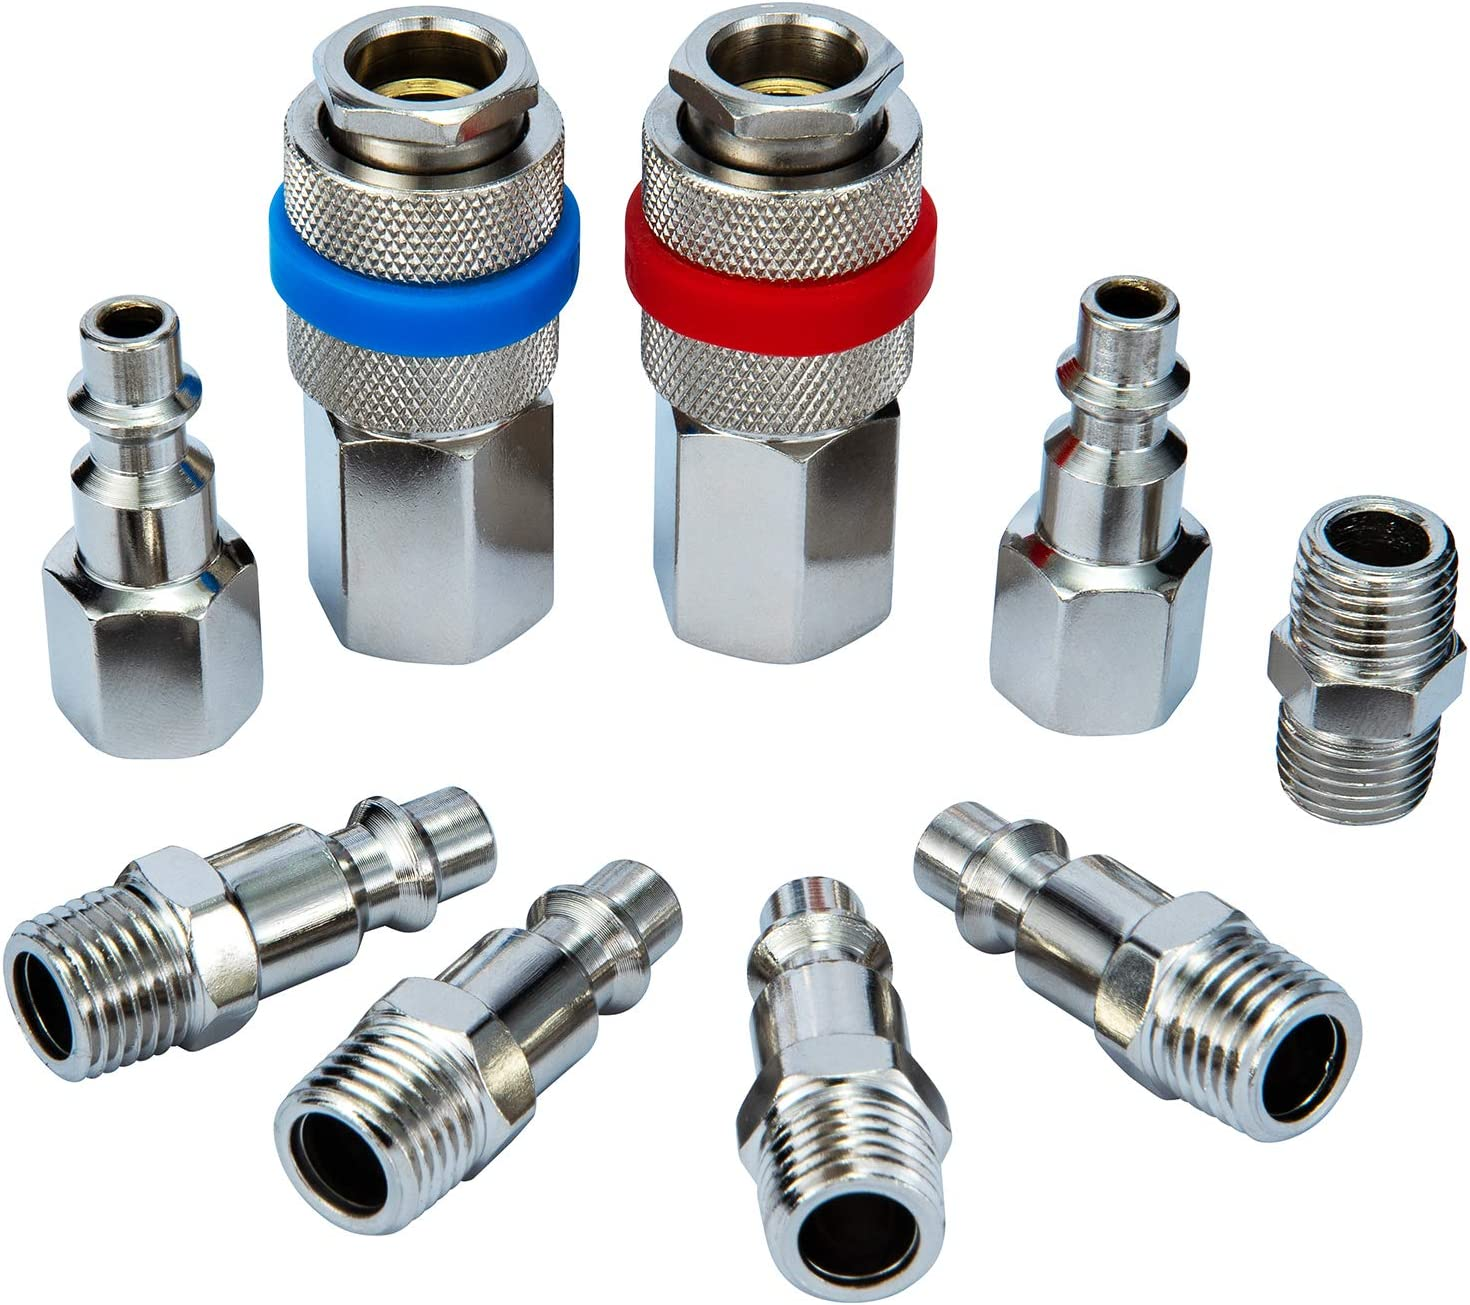 HJRbison universal air hose fittings1/4-in NPT air Coupler and Plug Kit(9 Piece), Construction of Stainless Steel, one hand operation, quick connect air hose fittings set, air hose quick connect - -